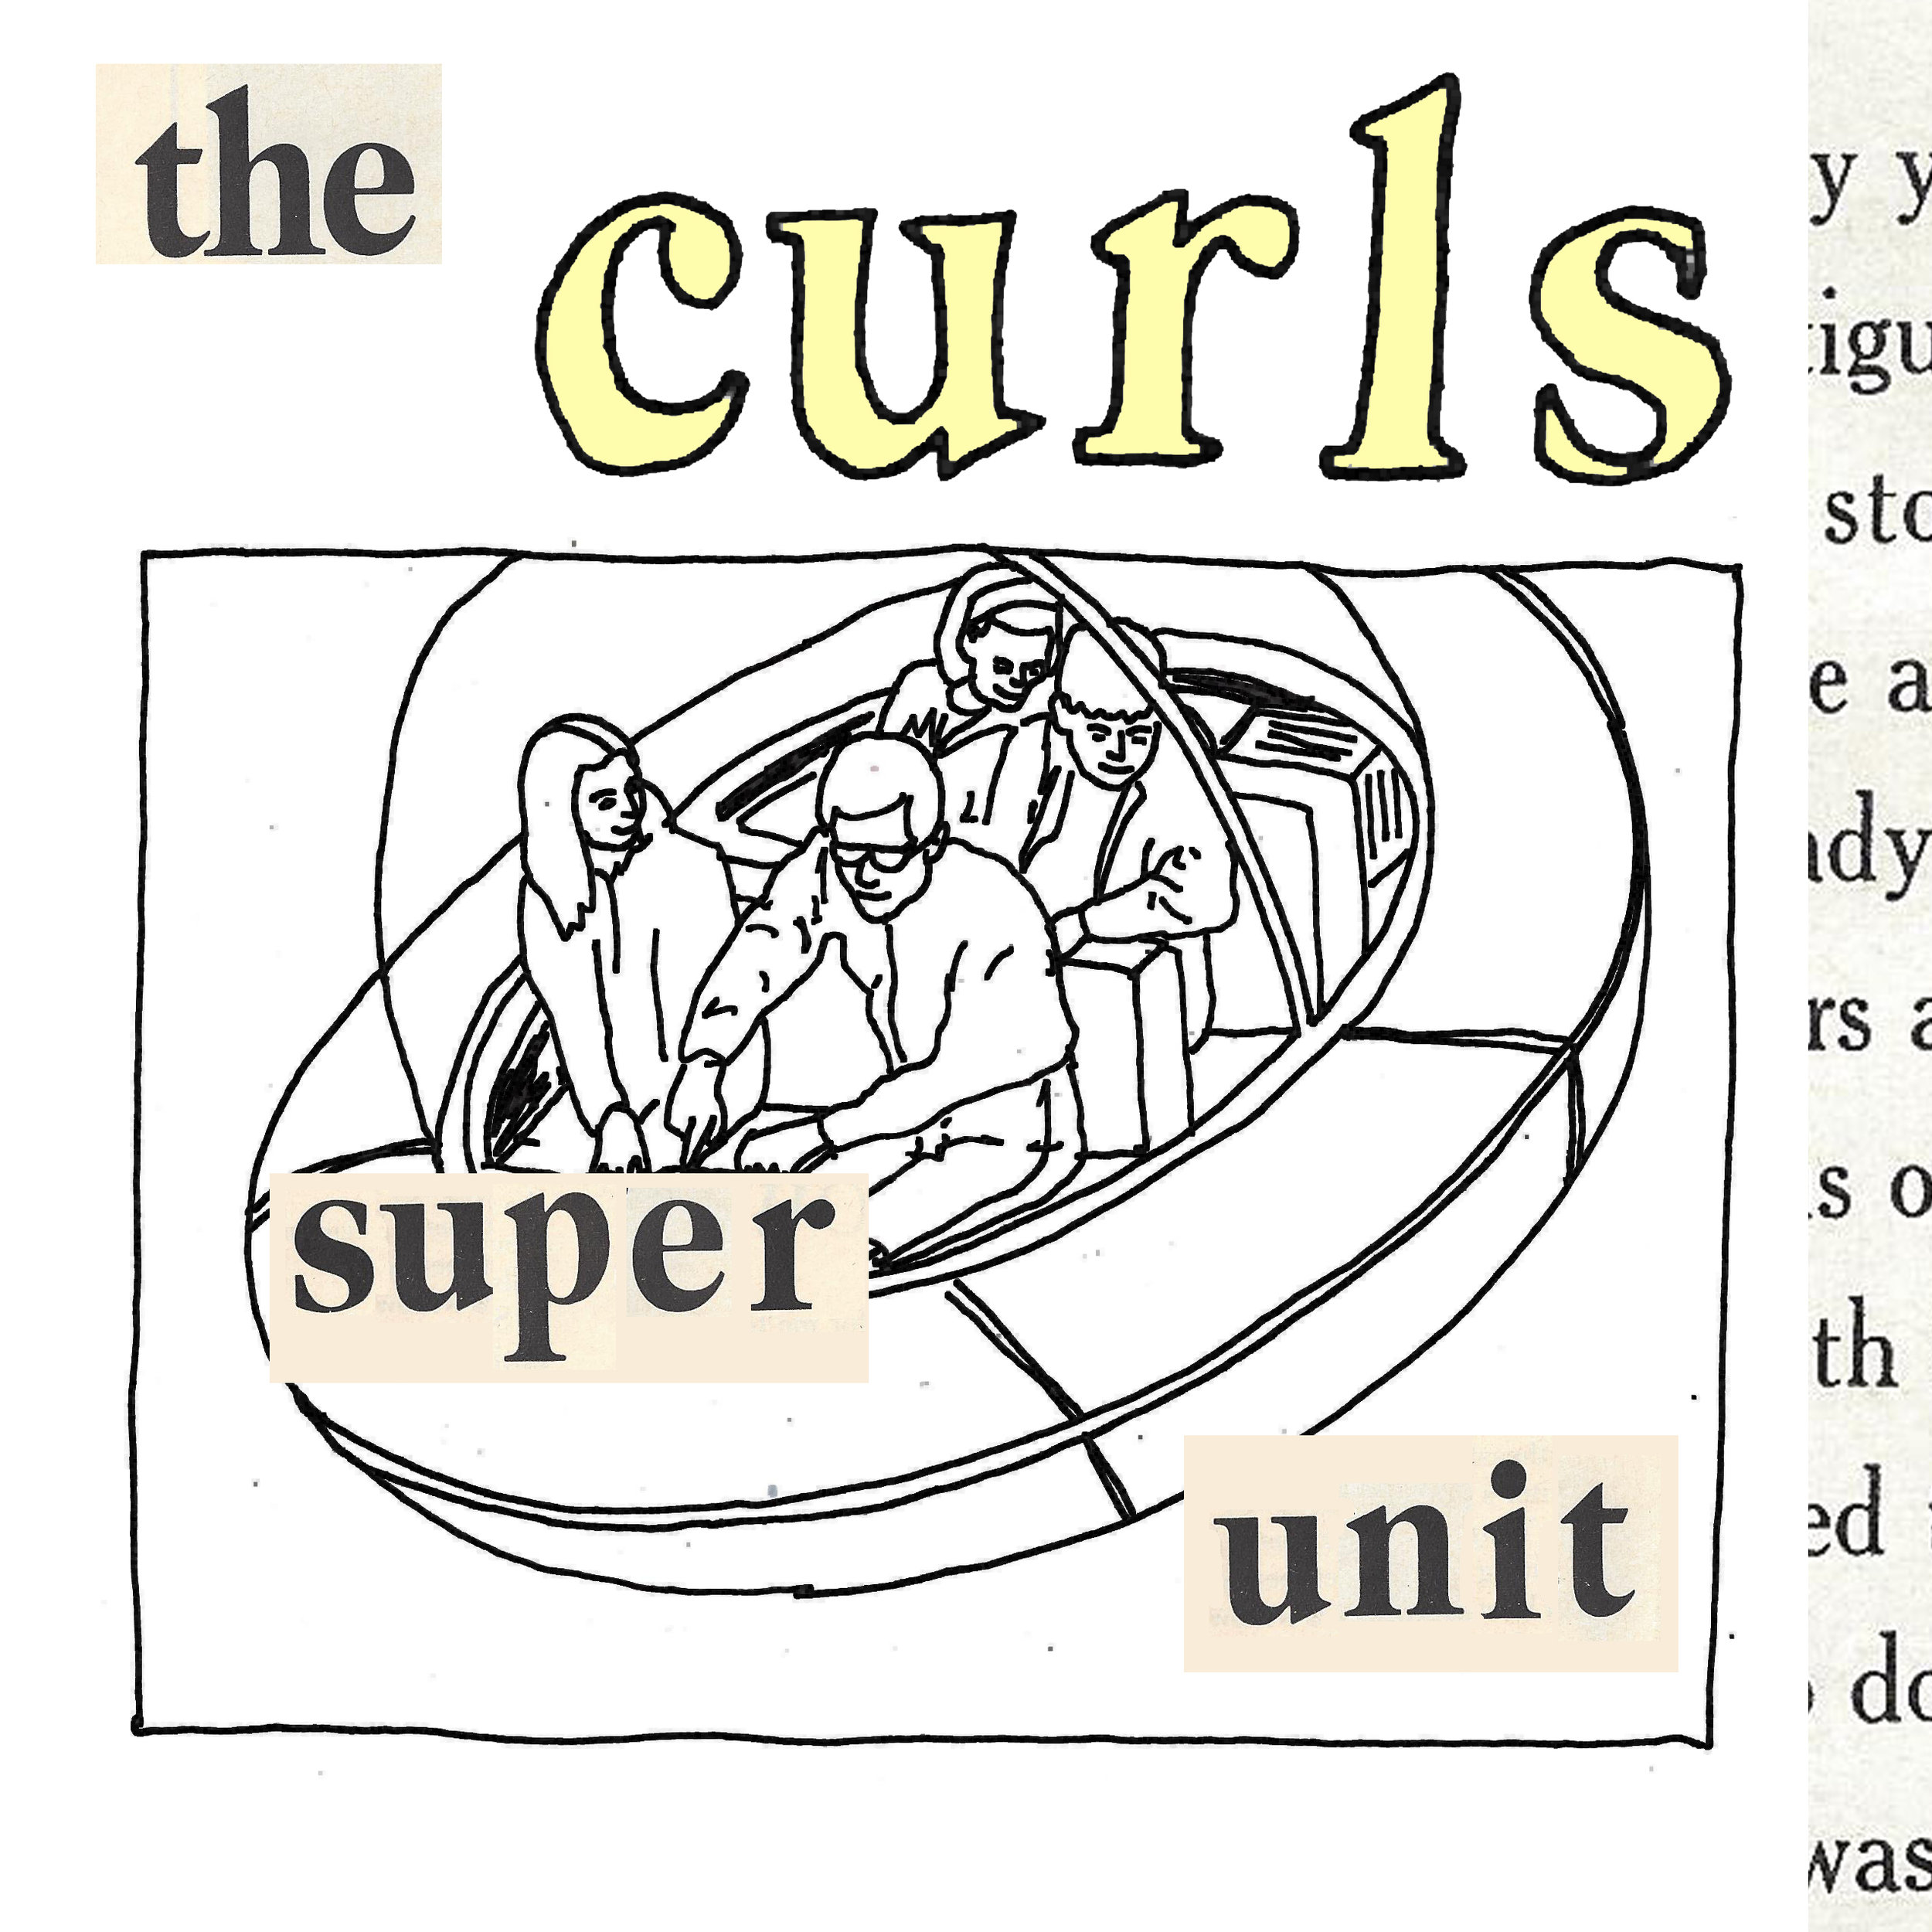 curls fan art.jpg